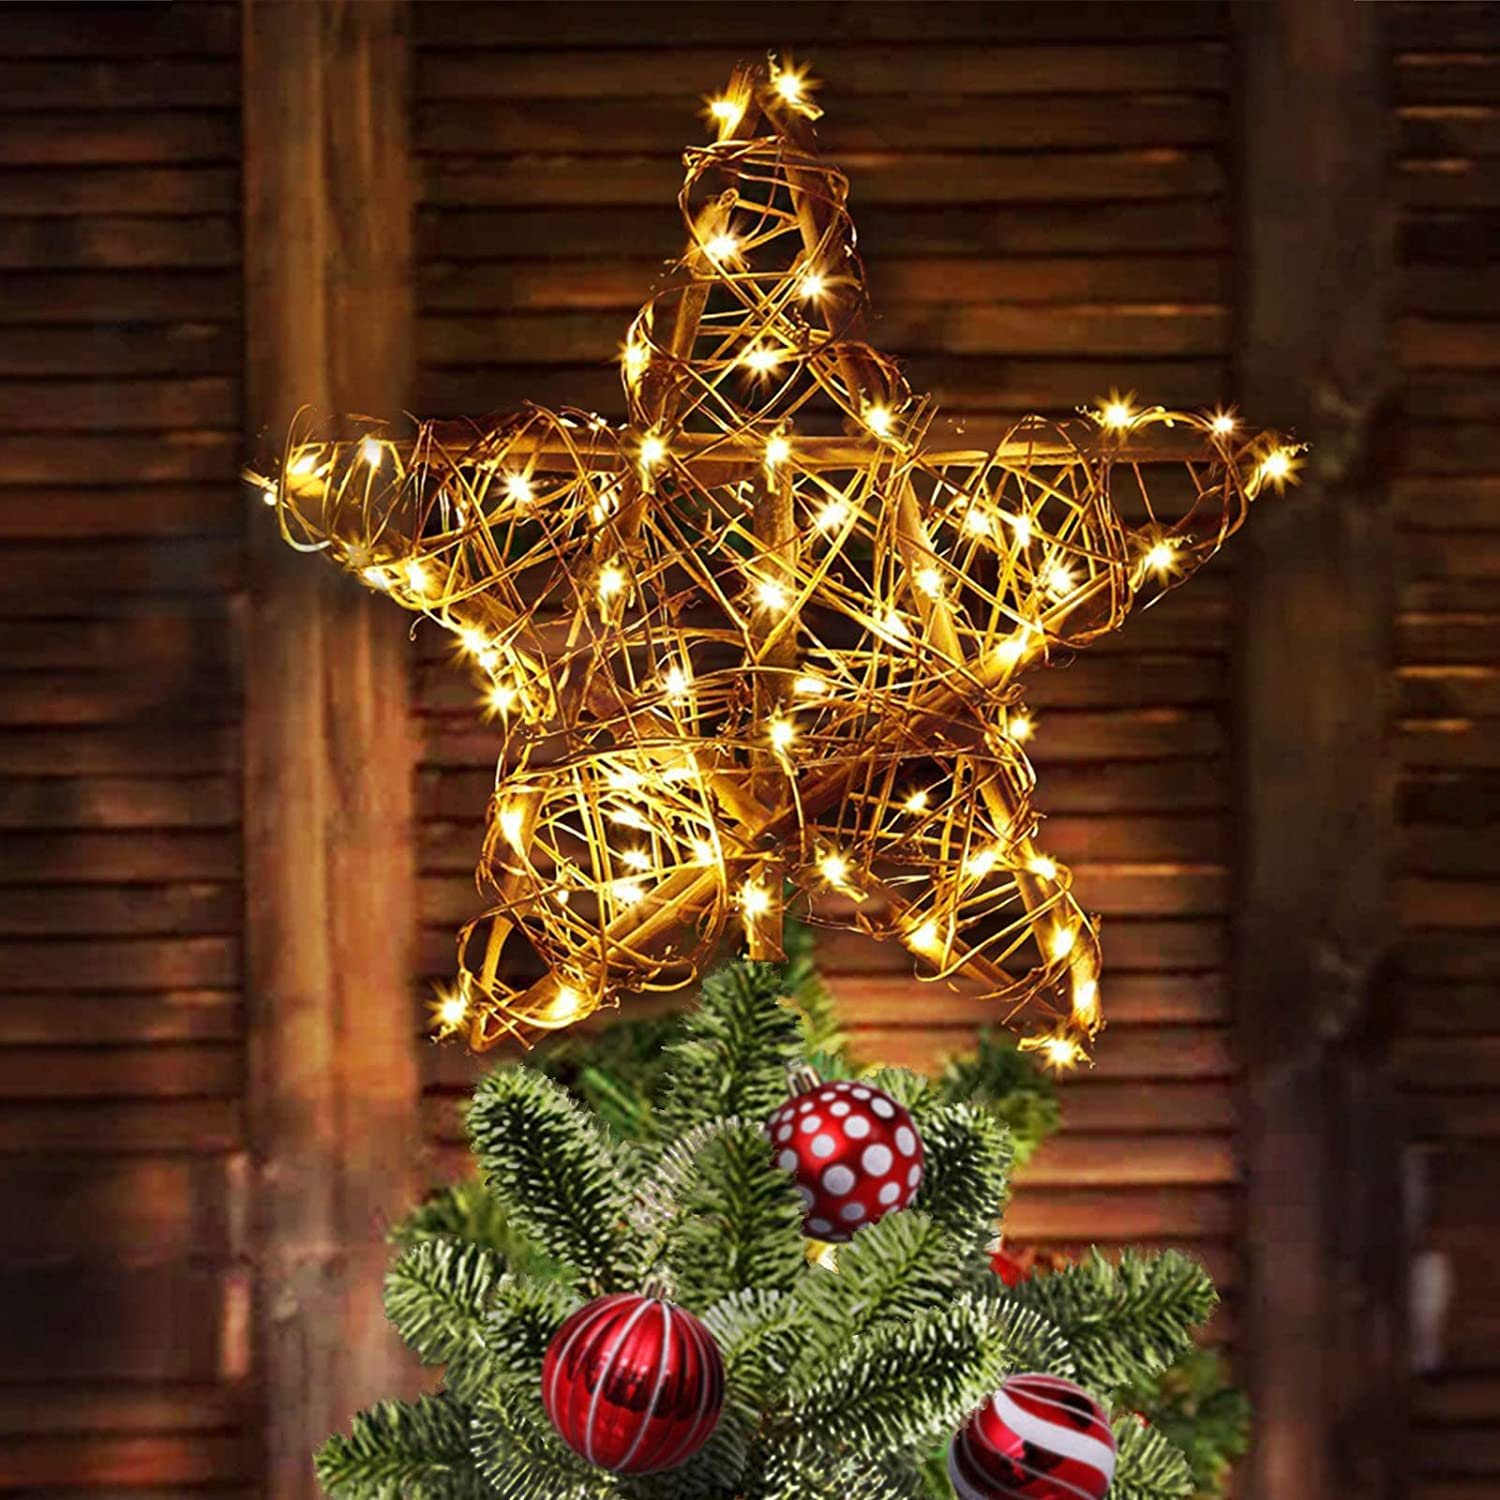 Star Christmas Tree Topper, Rattan Natural Christmas Tree Topper Lighted with 23Ft 30LED Warm White Battery Powered Copper Lights, Rustic Farmhouse Xmas Tree Topper Star Christmas Decorations